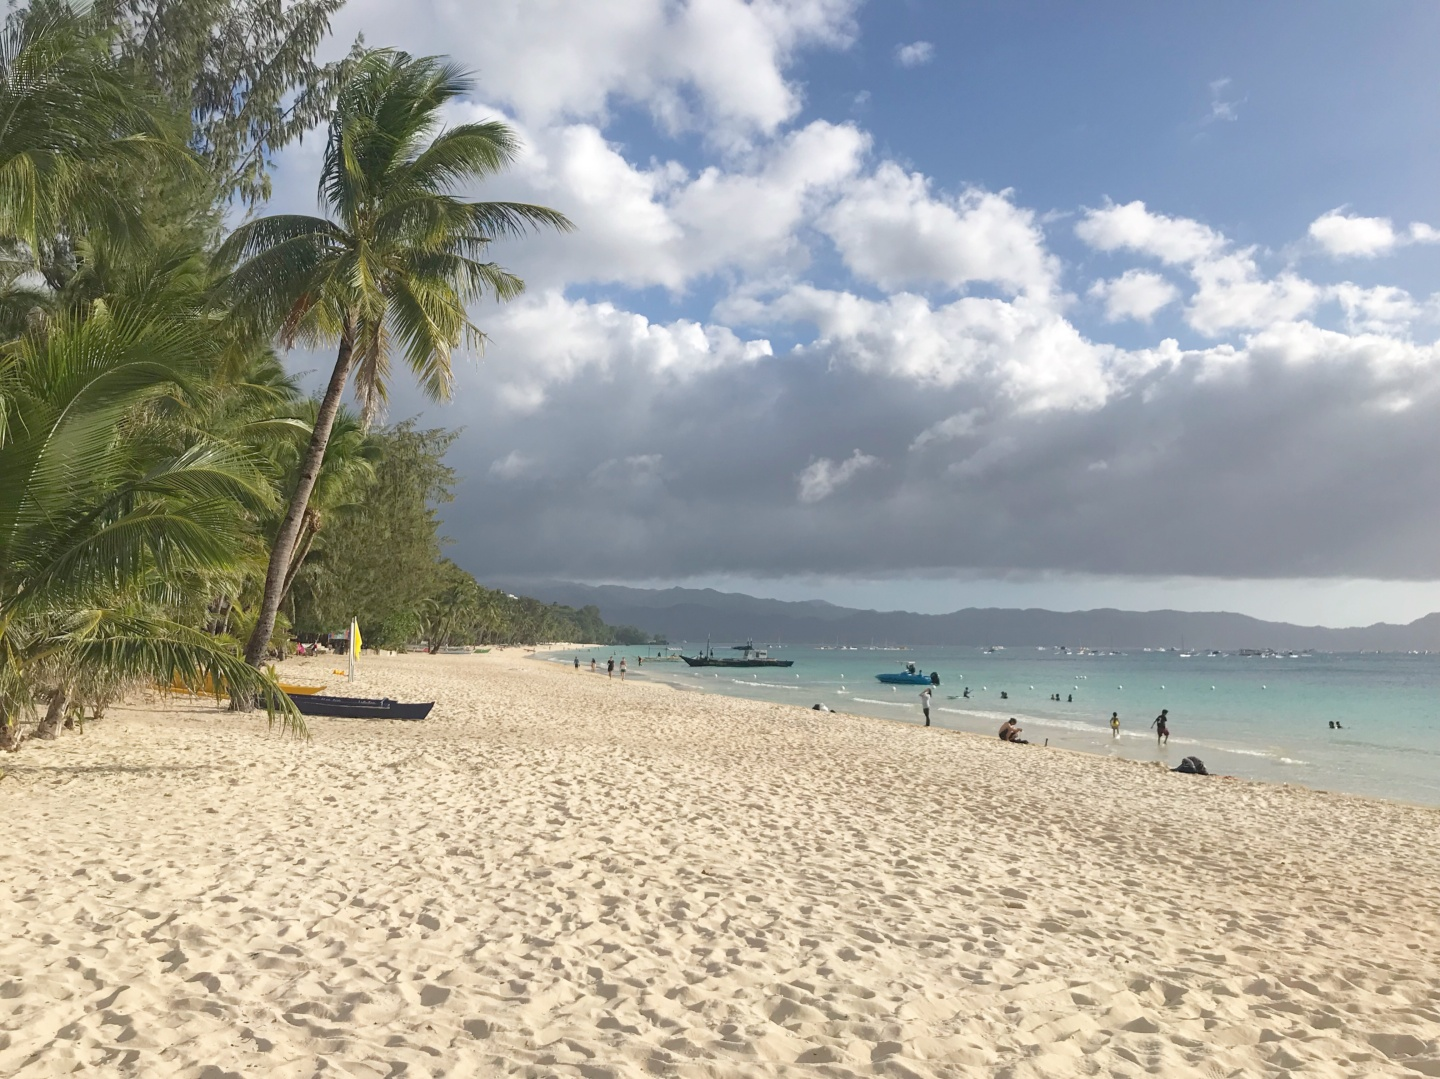 WanderlustBee - Three days in Boracay, Philippines